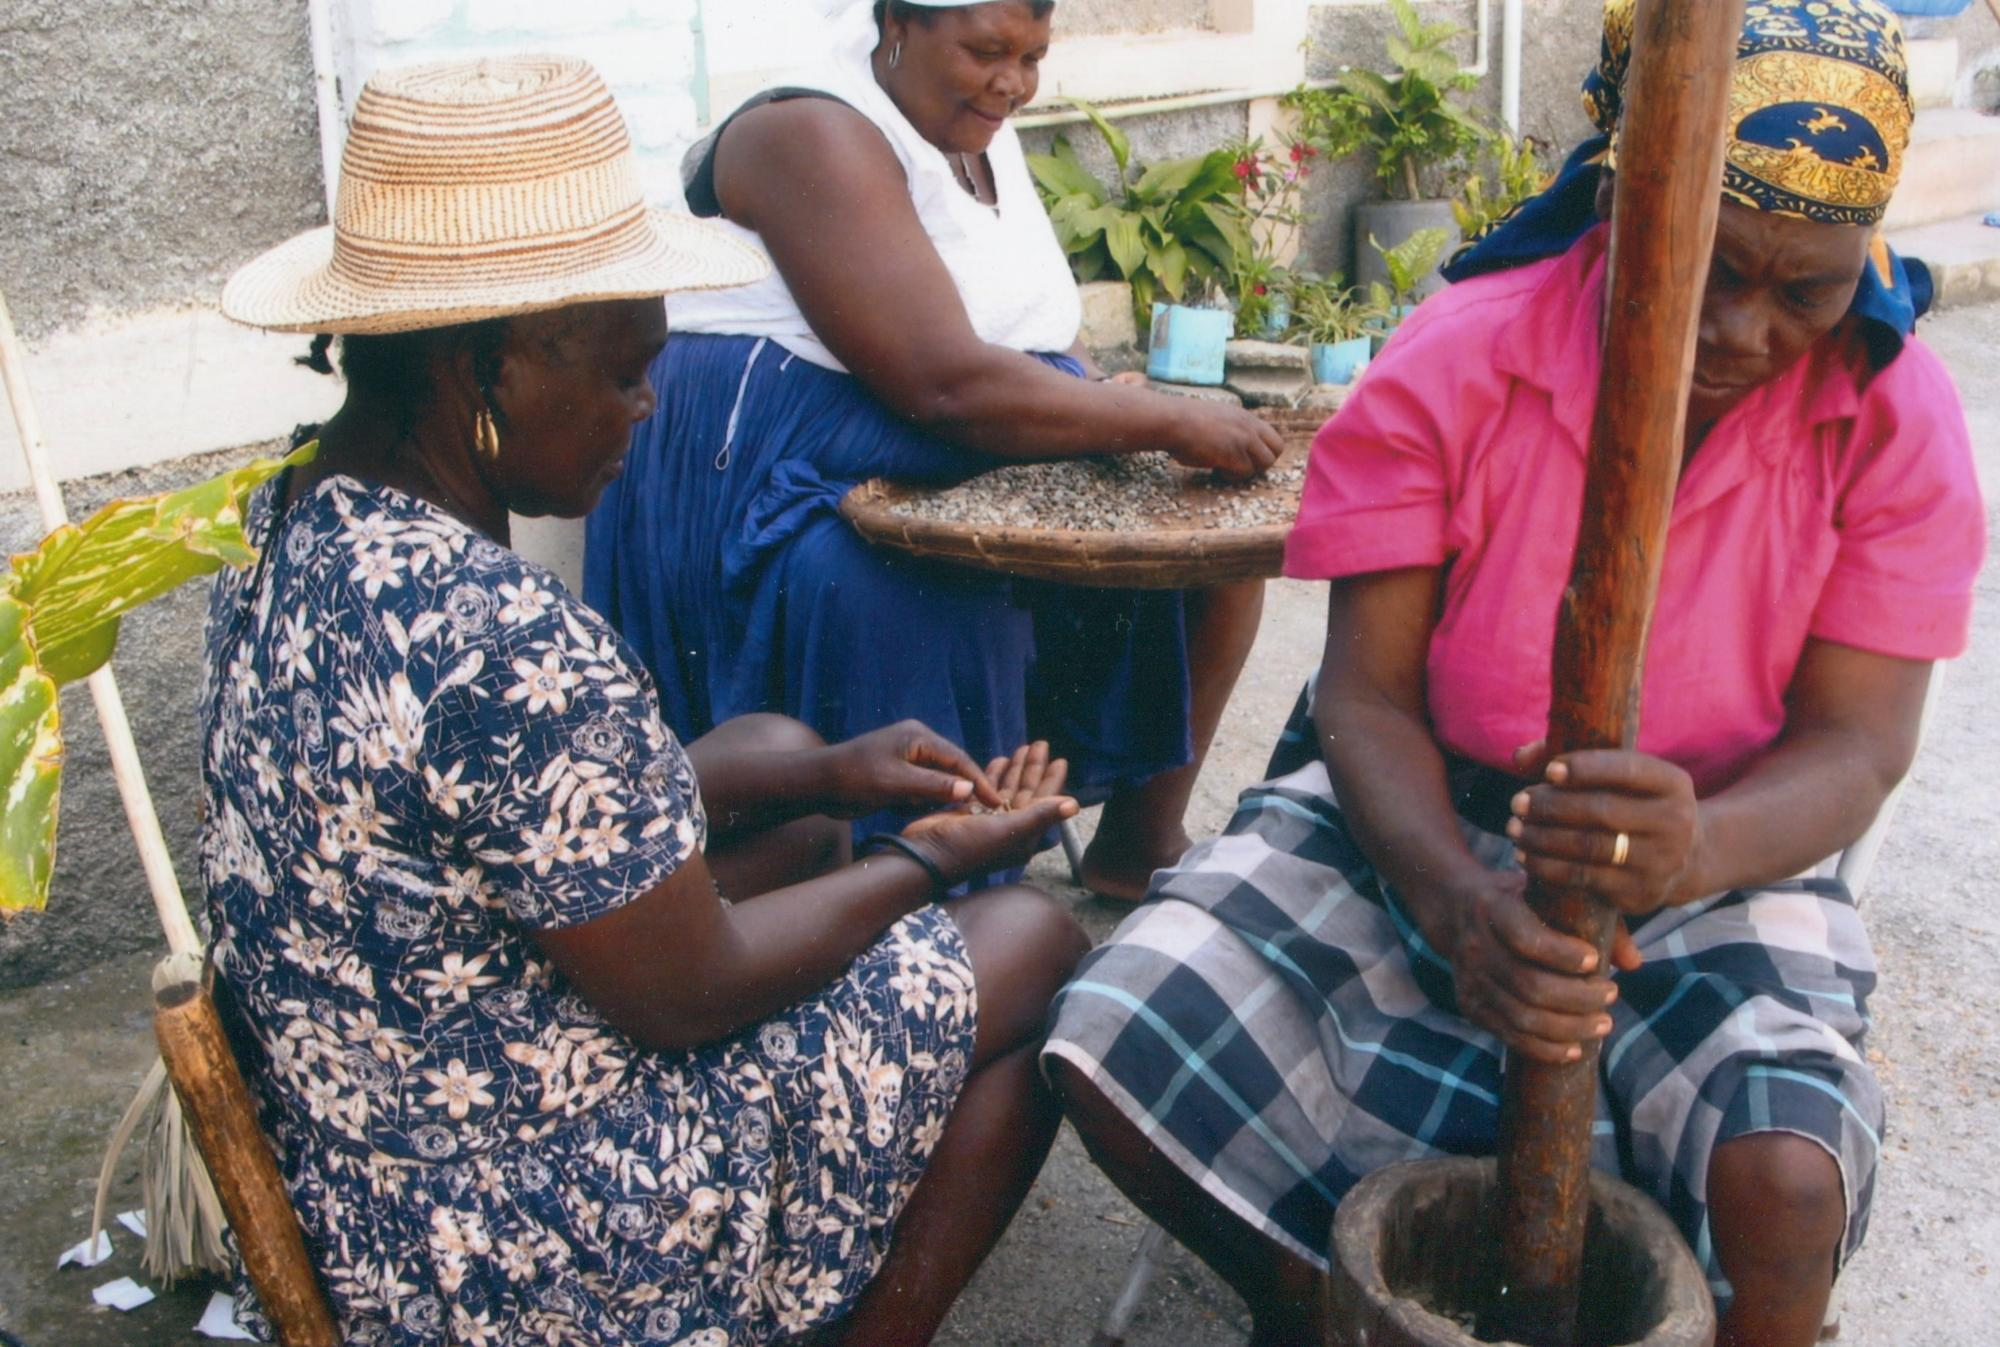 2002-3_Thiotte_Haiti_3_women_grind_grain_coffee____p_Dr_MM_image4.jpg